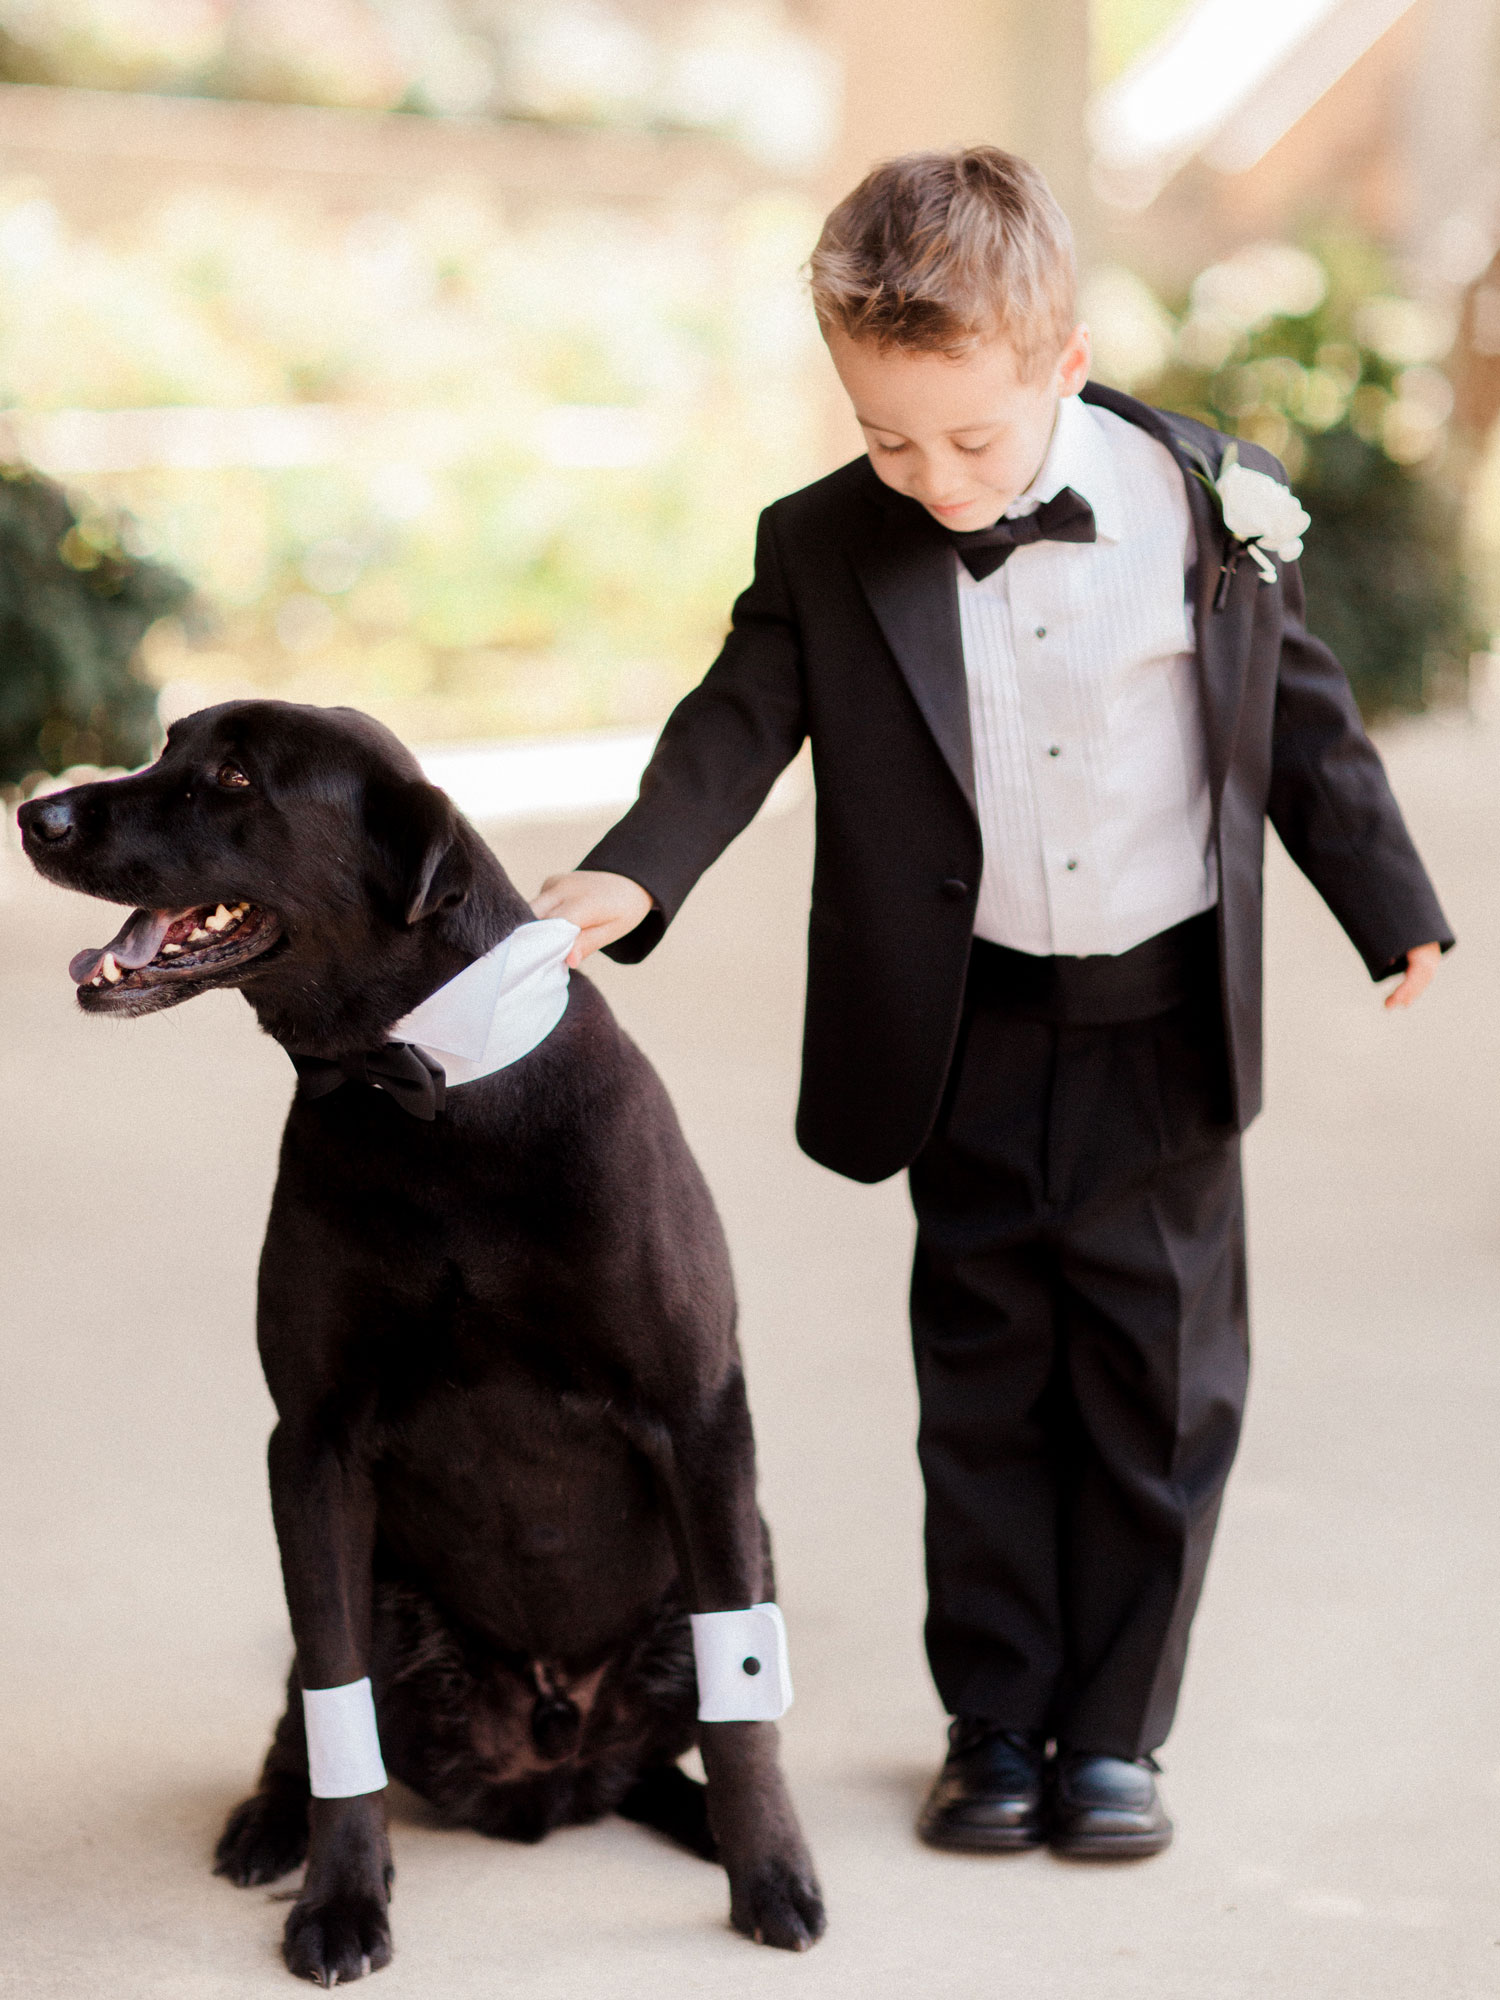 Dog dressed up in tuxedo with ring bearer